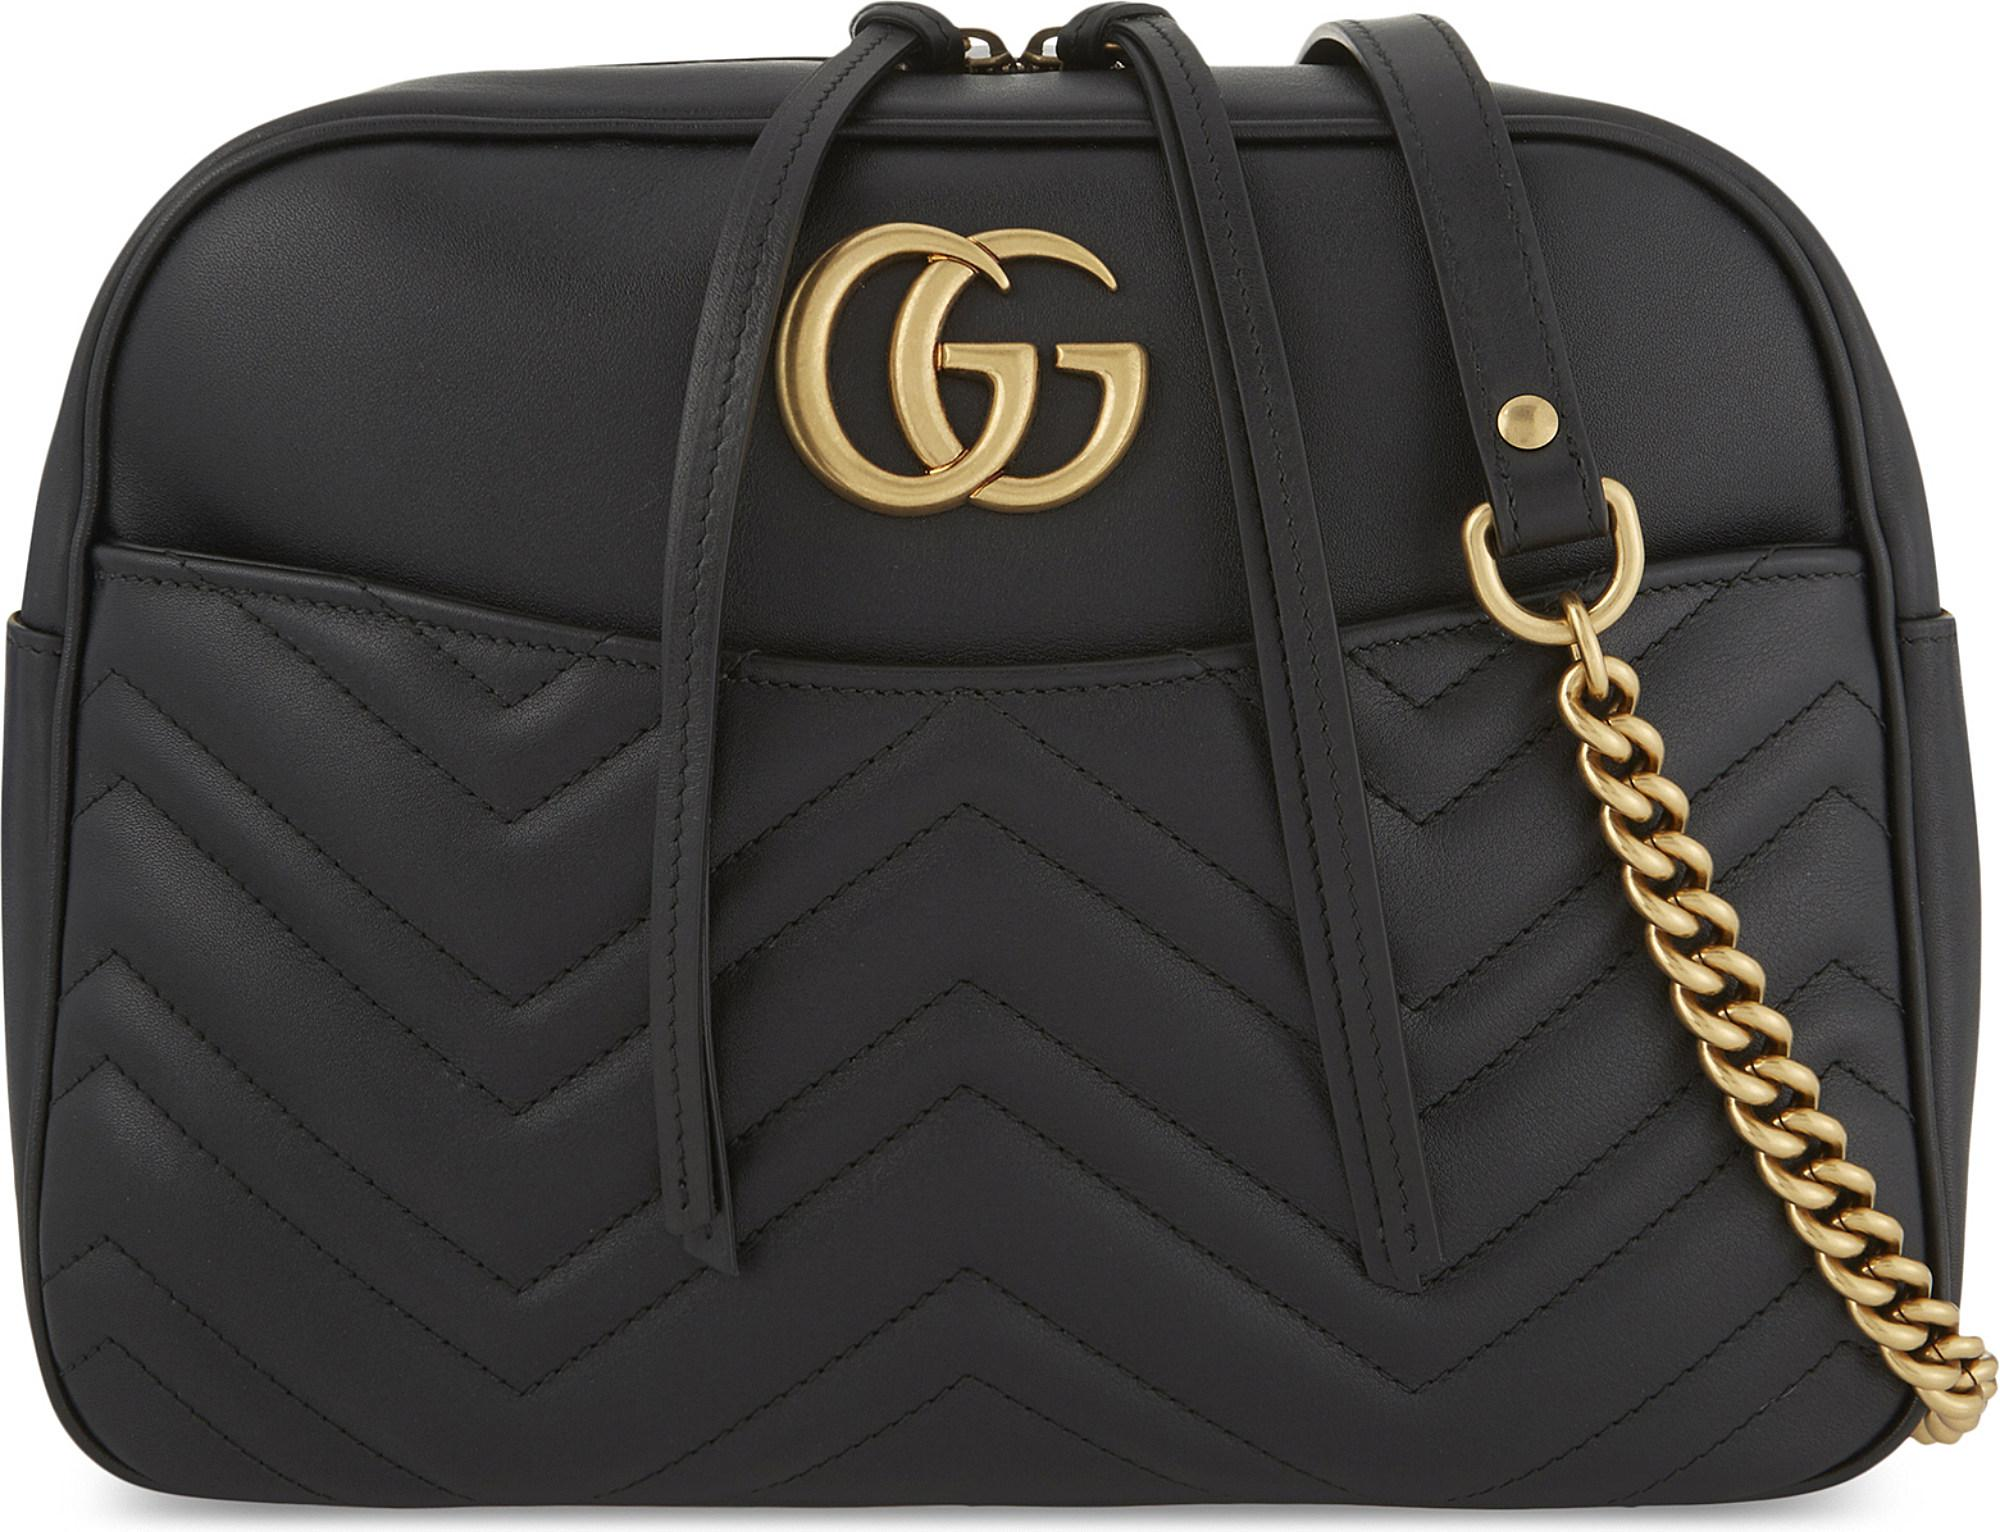 5fb734c24 Gucci GG Marmont Medium Quilted Leather Shoulder Bag in Black - Lyst